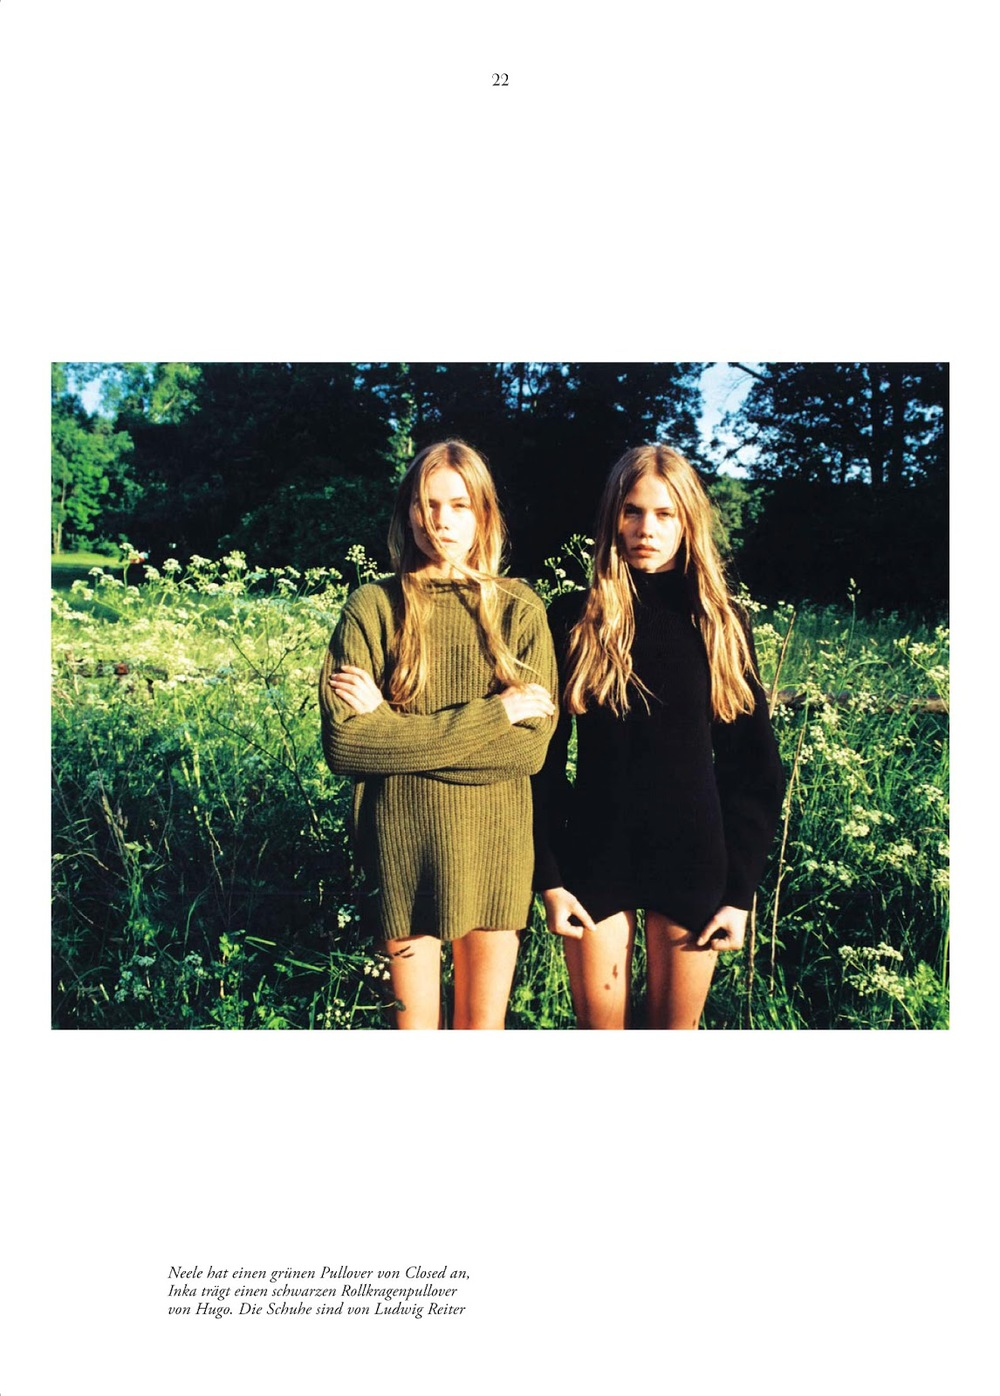 Inka-and-Neele-Hoeper-by-Lina-Scheynius-for-Zeit-Magazin-July-4-2013-6.jpg